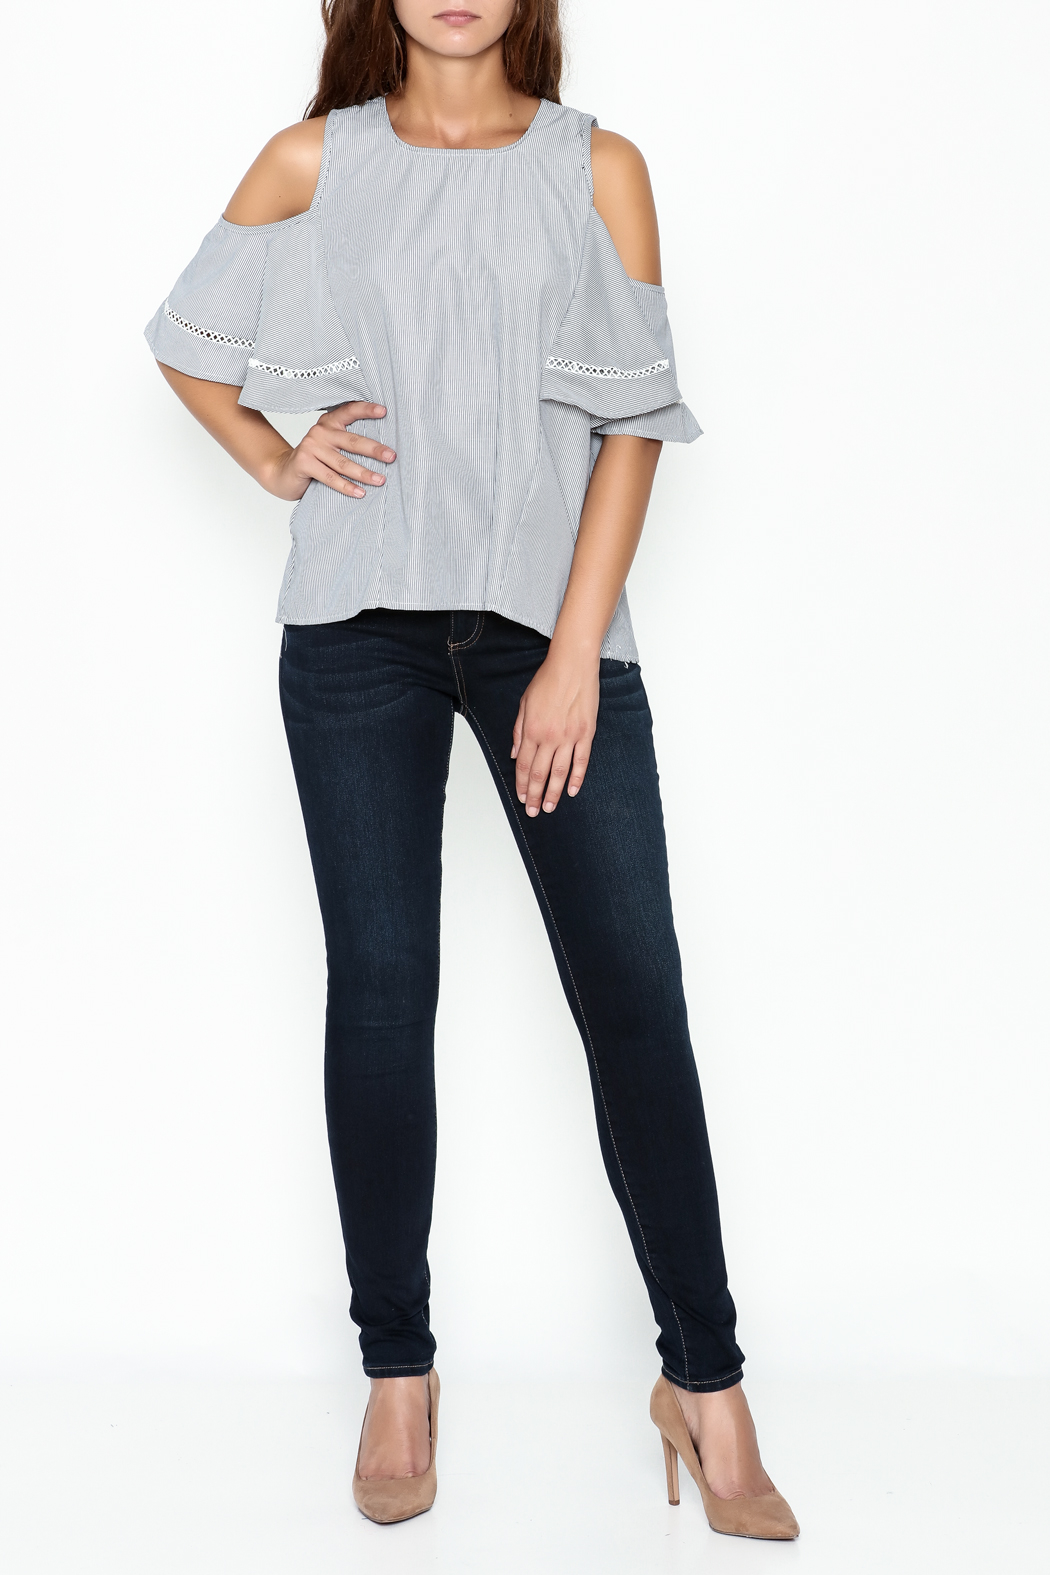 Grace & Emma Grey Cold Shoulder Top - Side Cropped Image